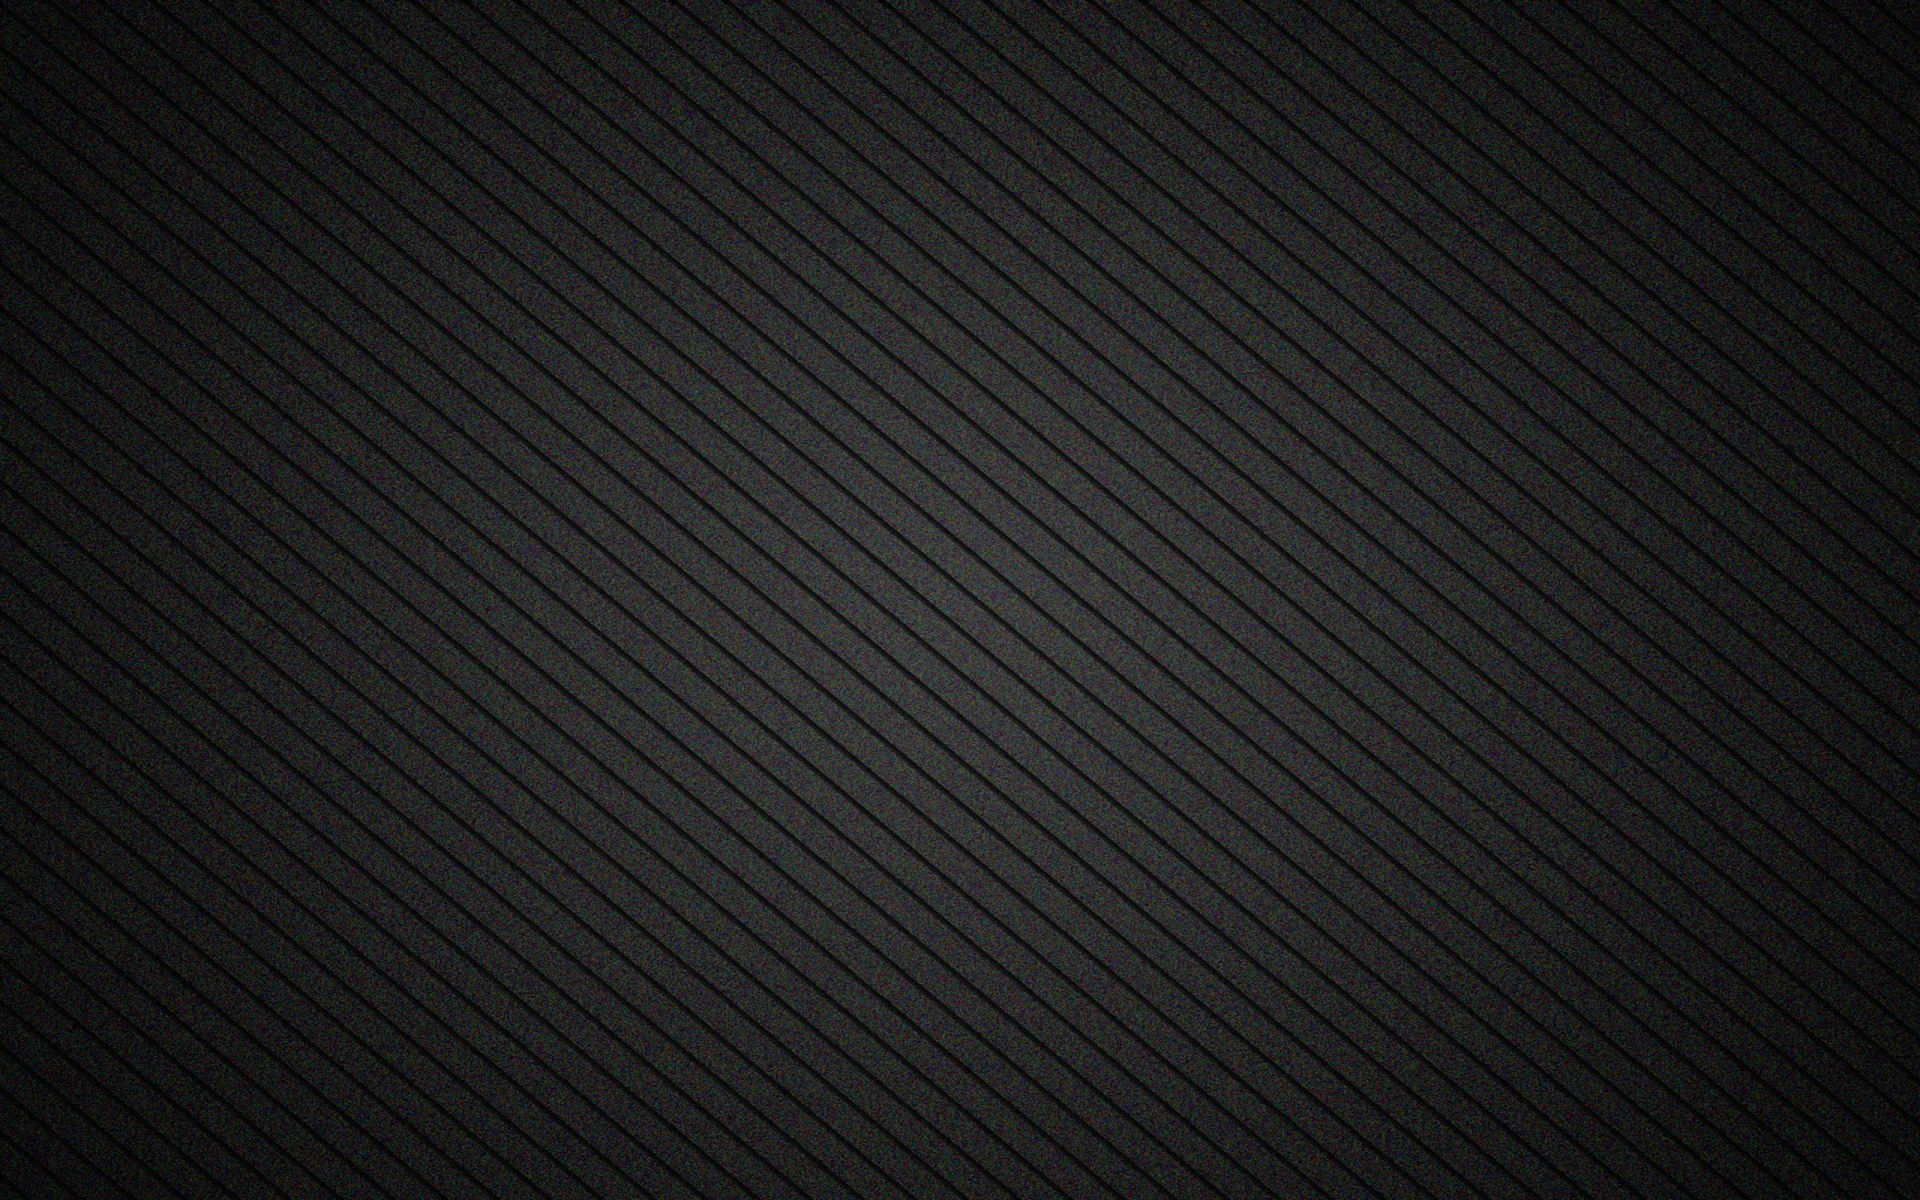 Black Wallpaper 30 1920x1200